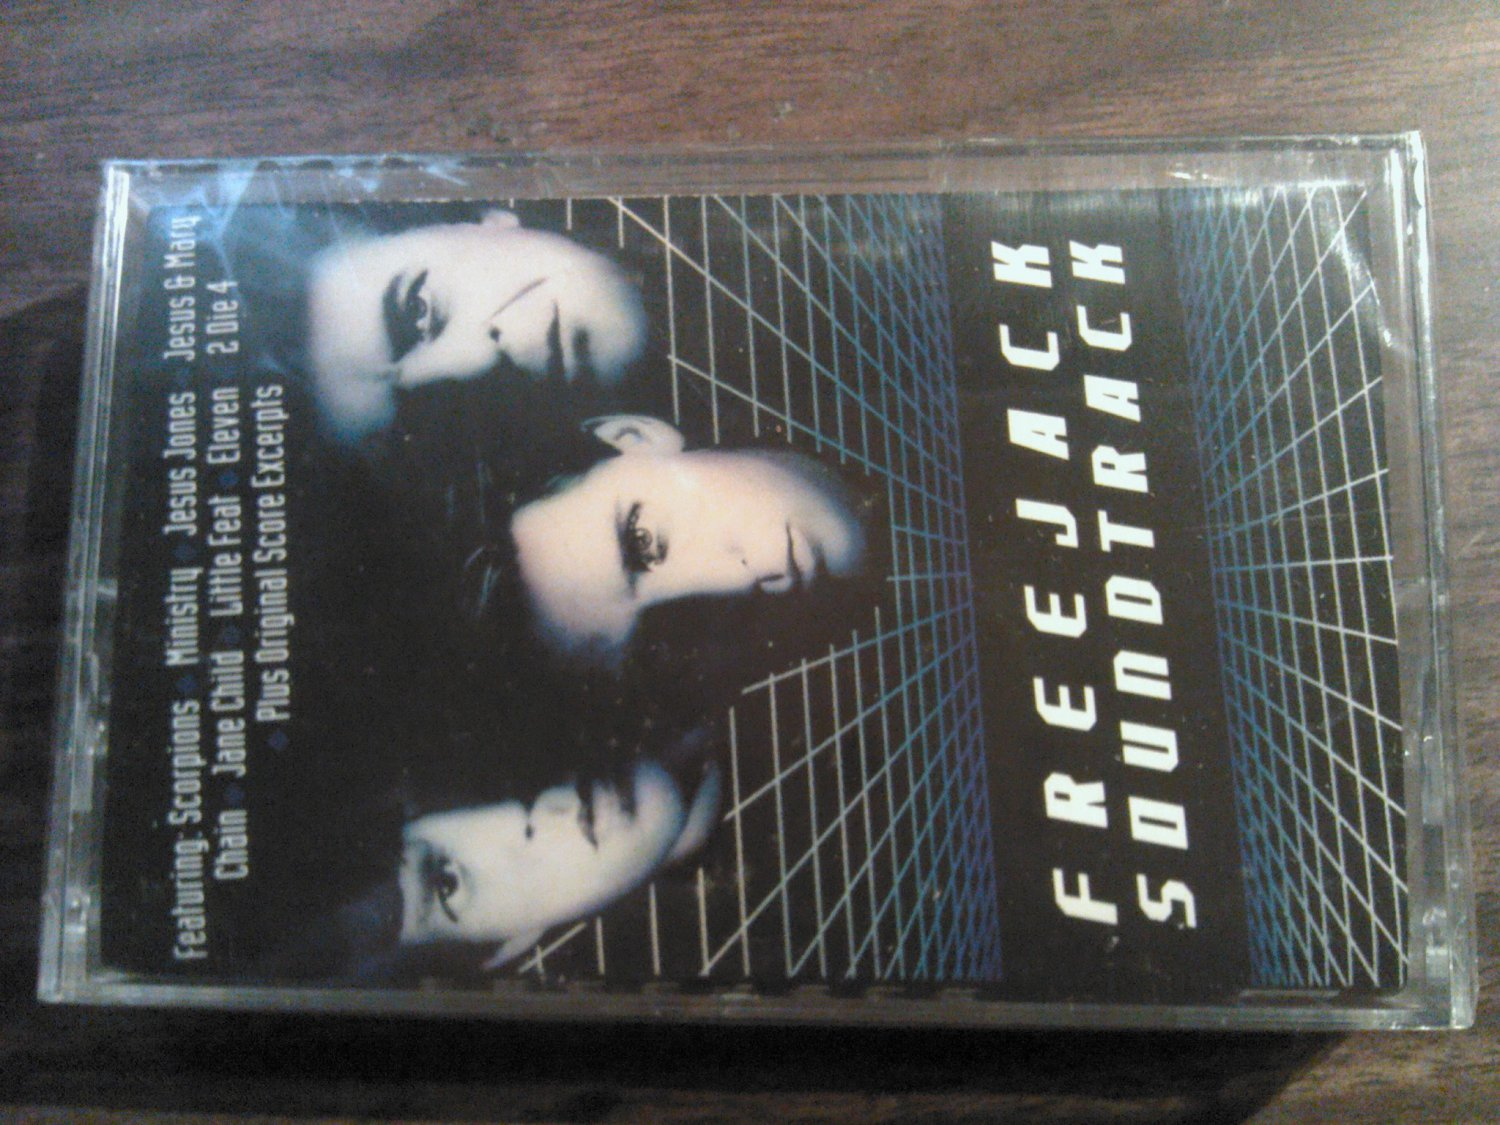 V/A cassette tape Scorpions Ministry Jesus and Mary Chain Jones Little Feat freejack SEALED SALE